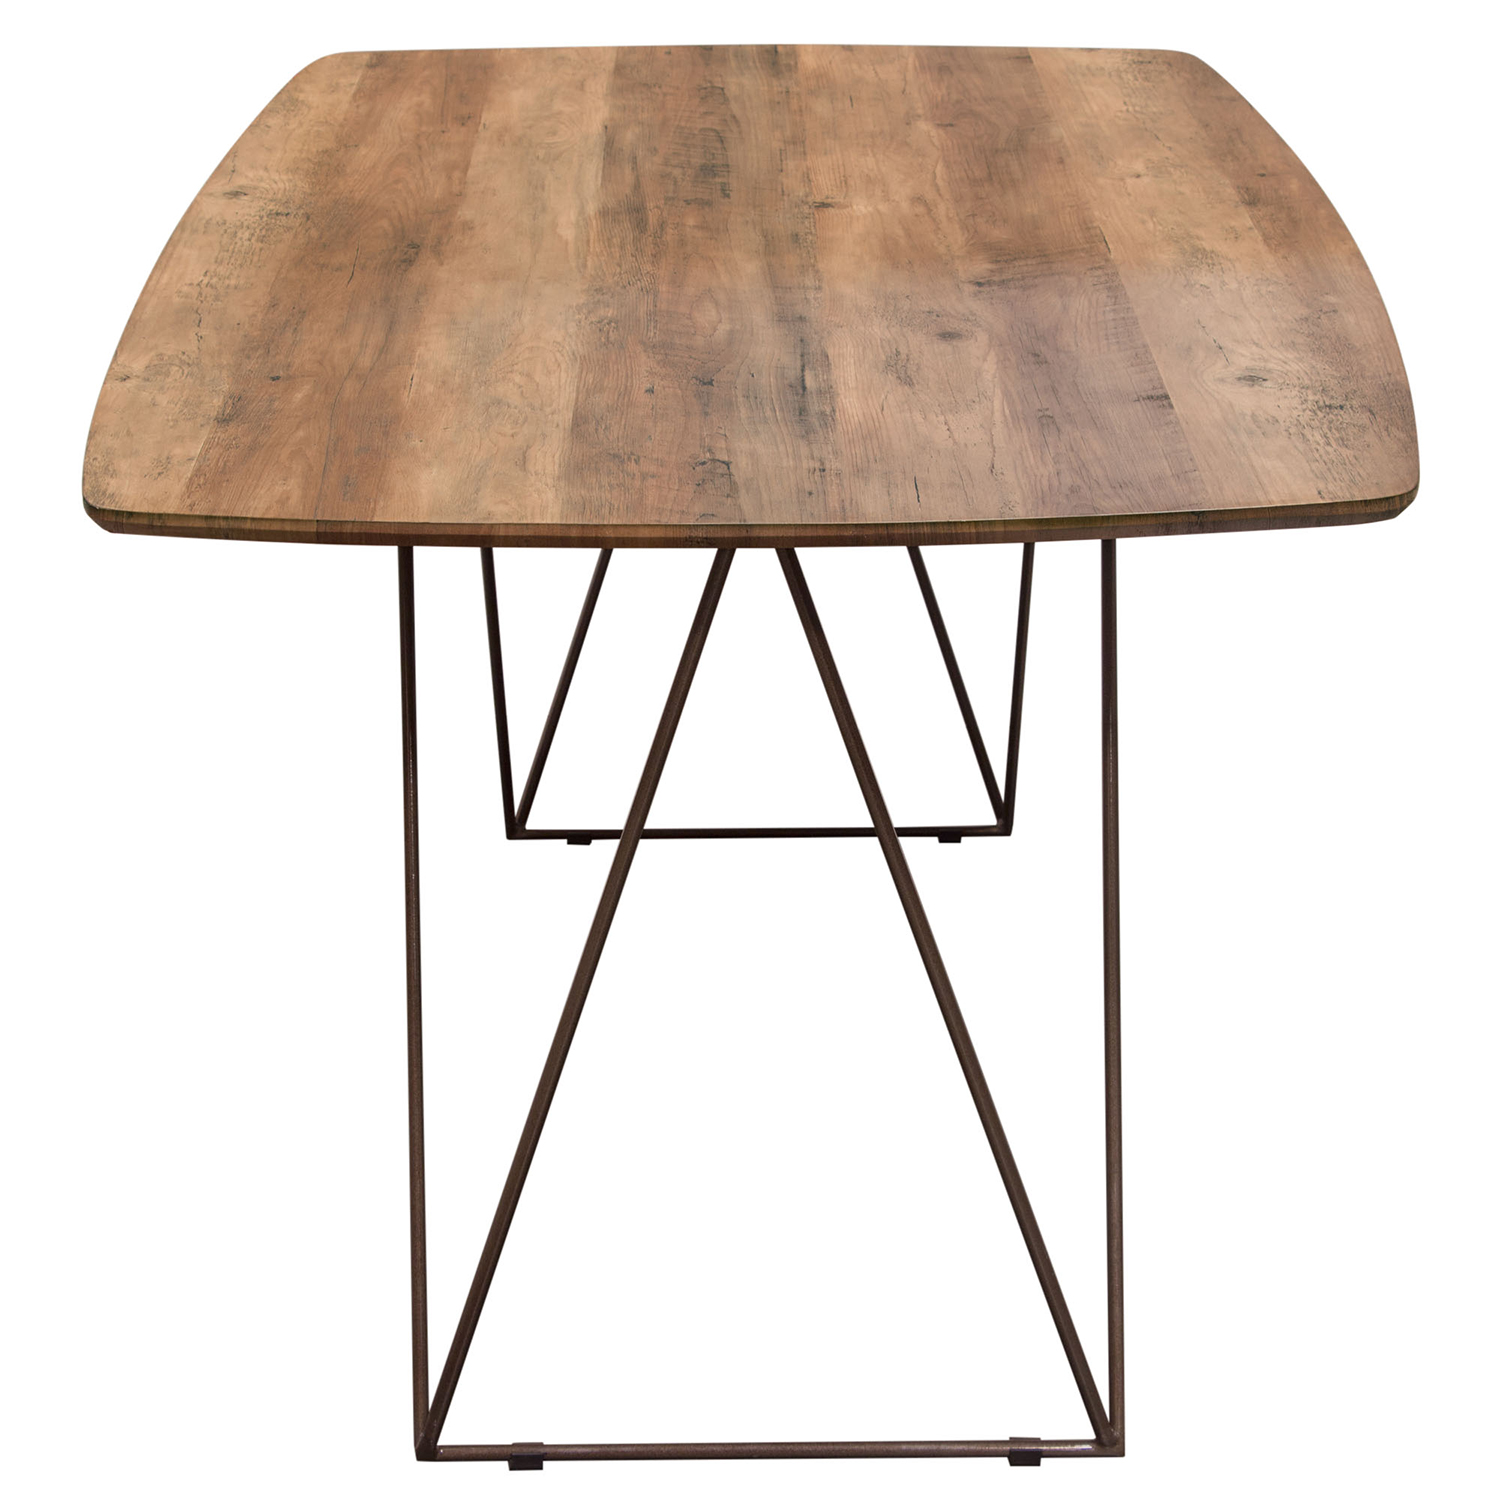 Admirable Star 63 Dining Table W Walnut Finished Top On Raw Metal Legs By Diamond Sofa Machost Co Dining Chair Design Ideas Machostcouk